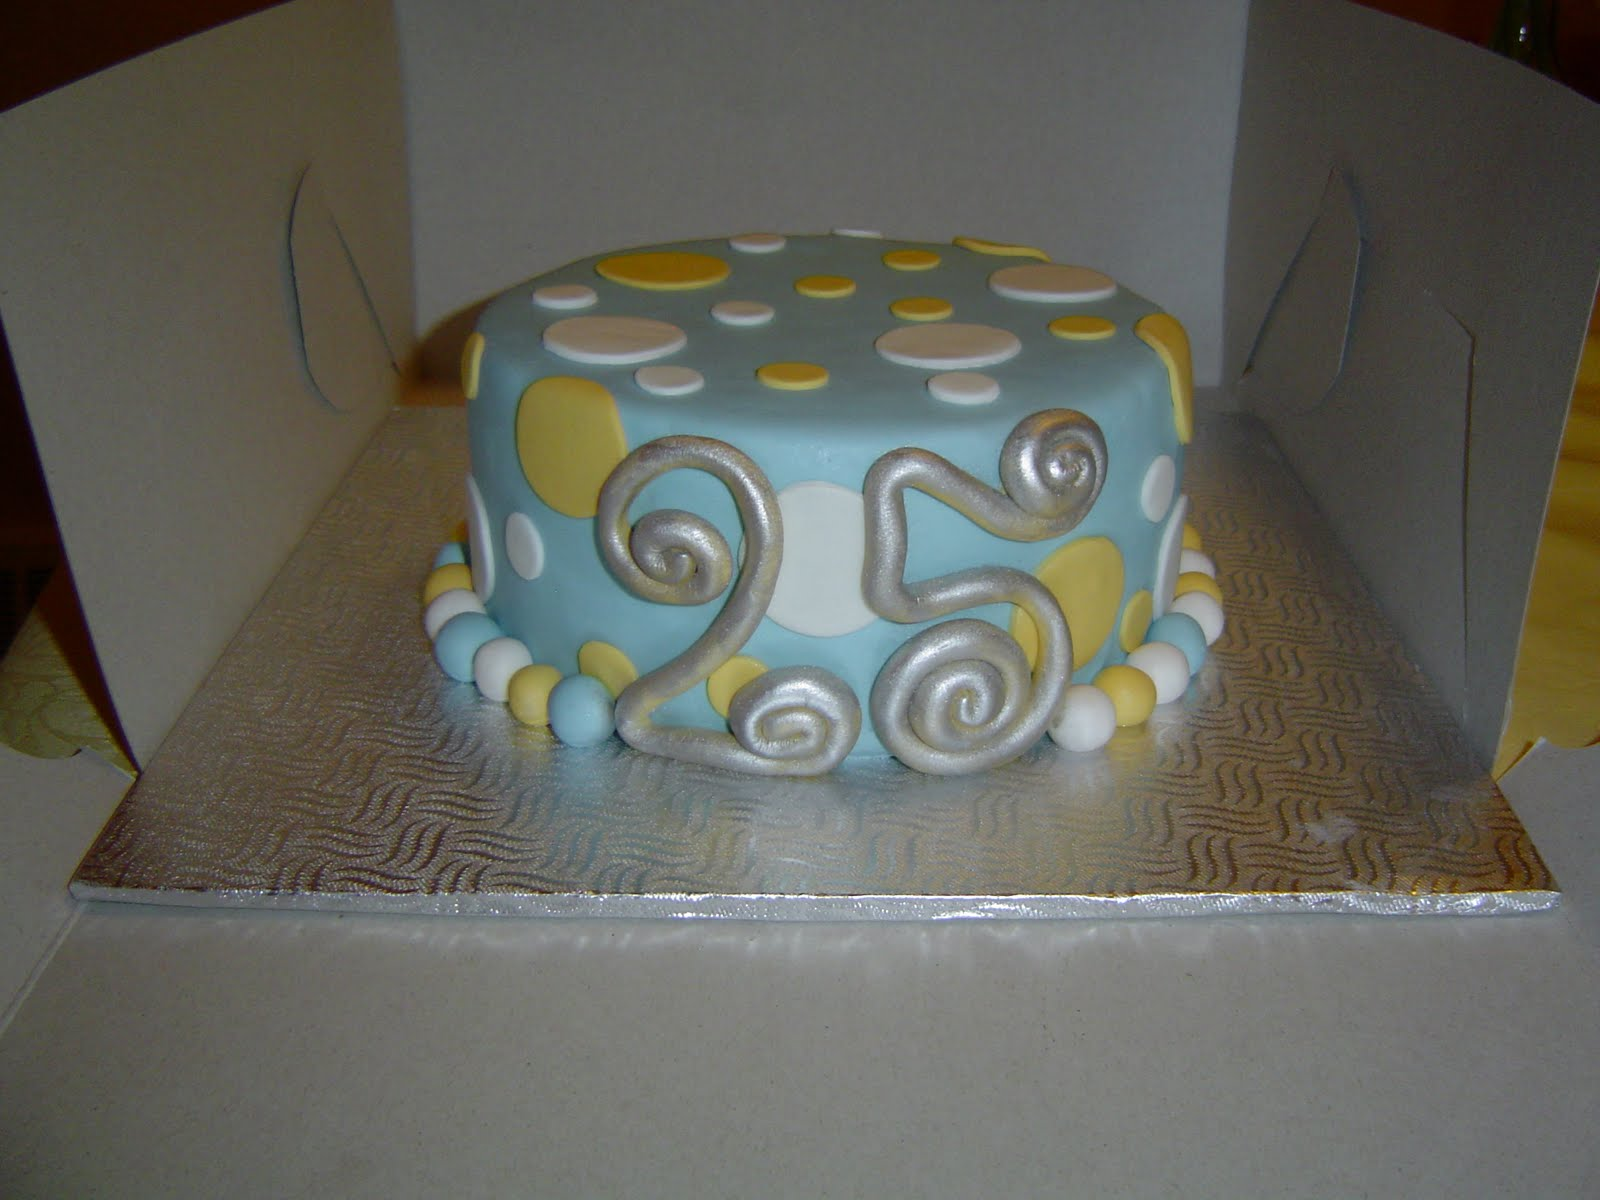 Pictures of 25Th Anniversary Cakes http://cakes-by-jess.blogspot.com/2010/05/25th-anniversary-cake.html